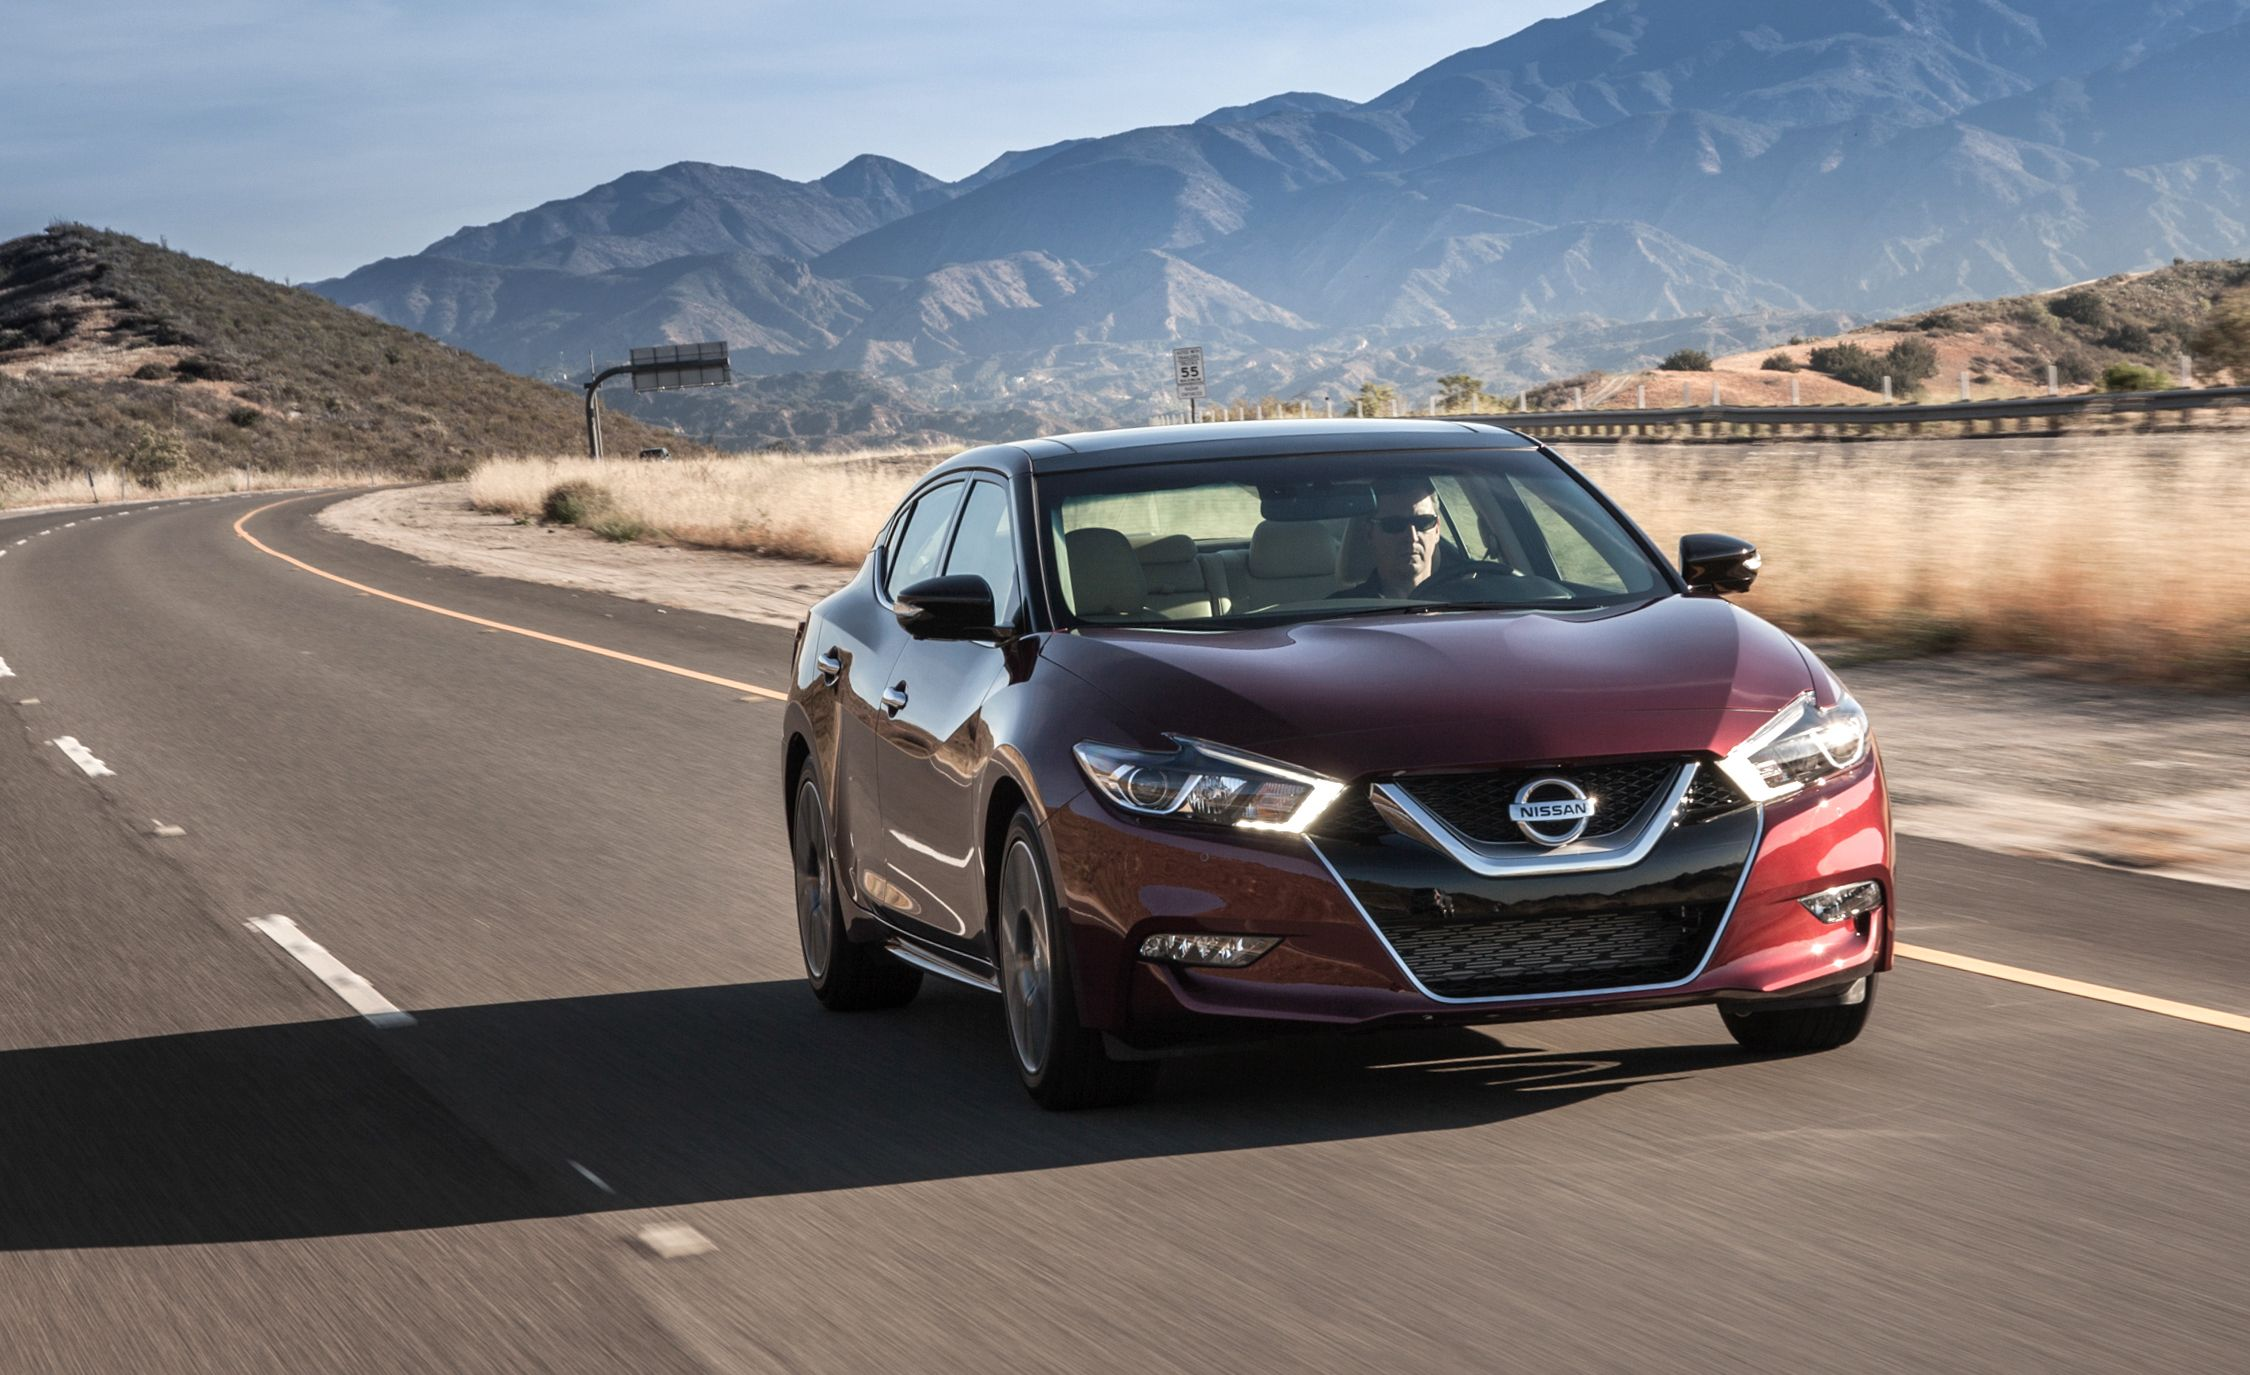 2017 Nissan Maxima Fuel Economy Review